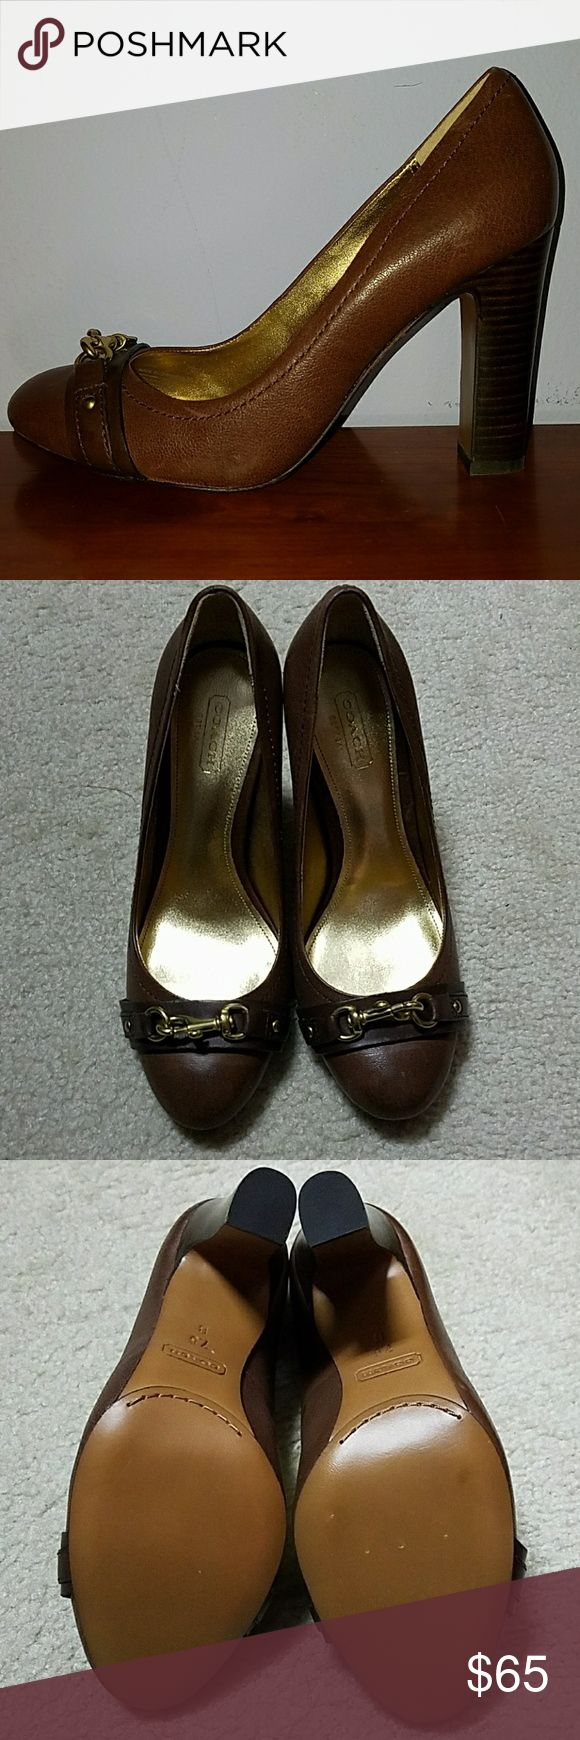 "Coach Brown Closed Toe Shoe Brand new Coach Brown closed toe 3.5"" heel with gold accent buckle. Coach Shoes Heels"